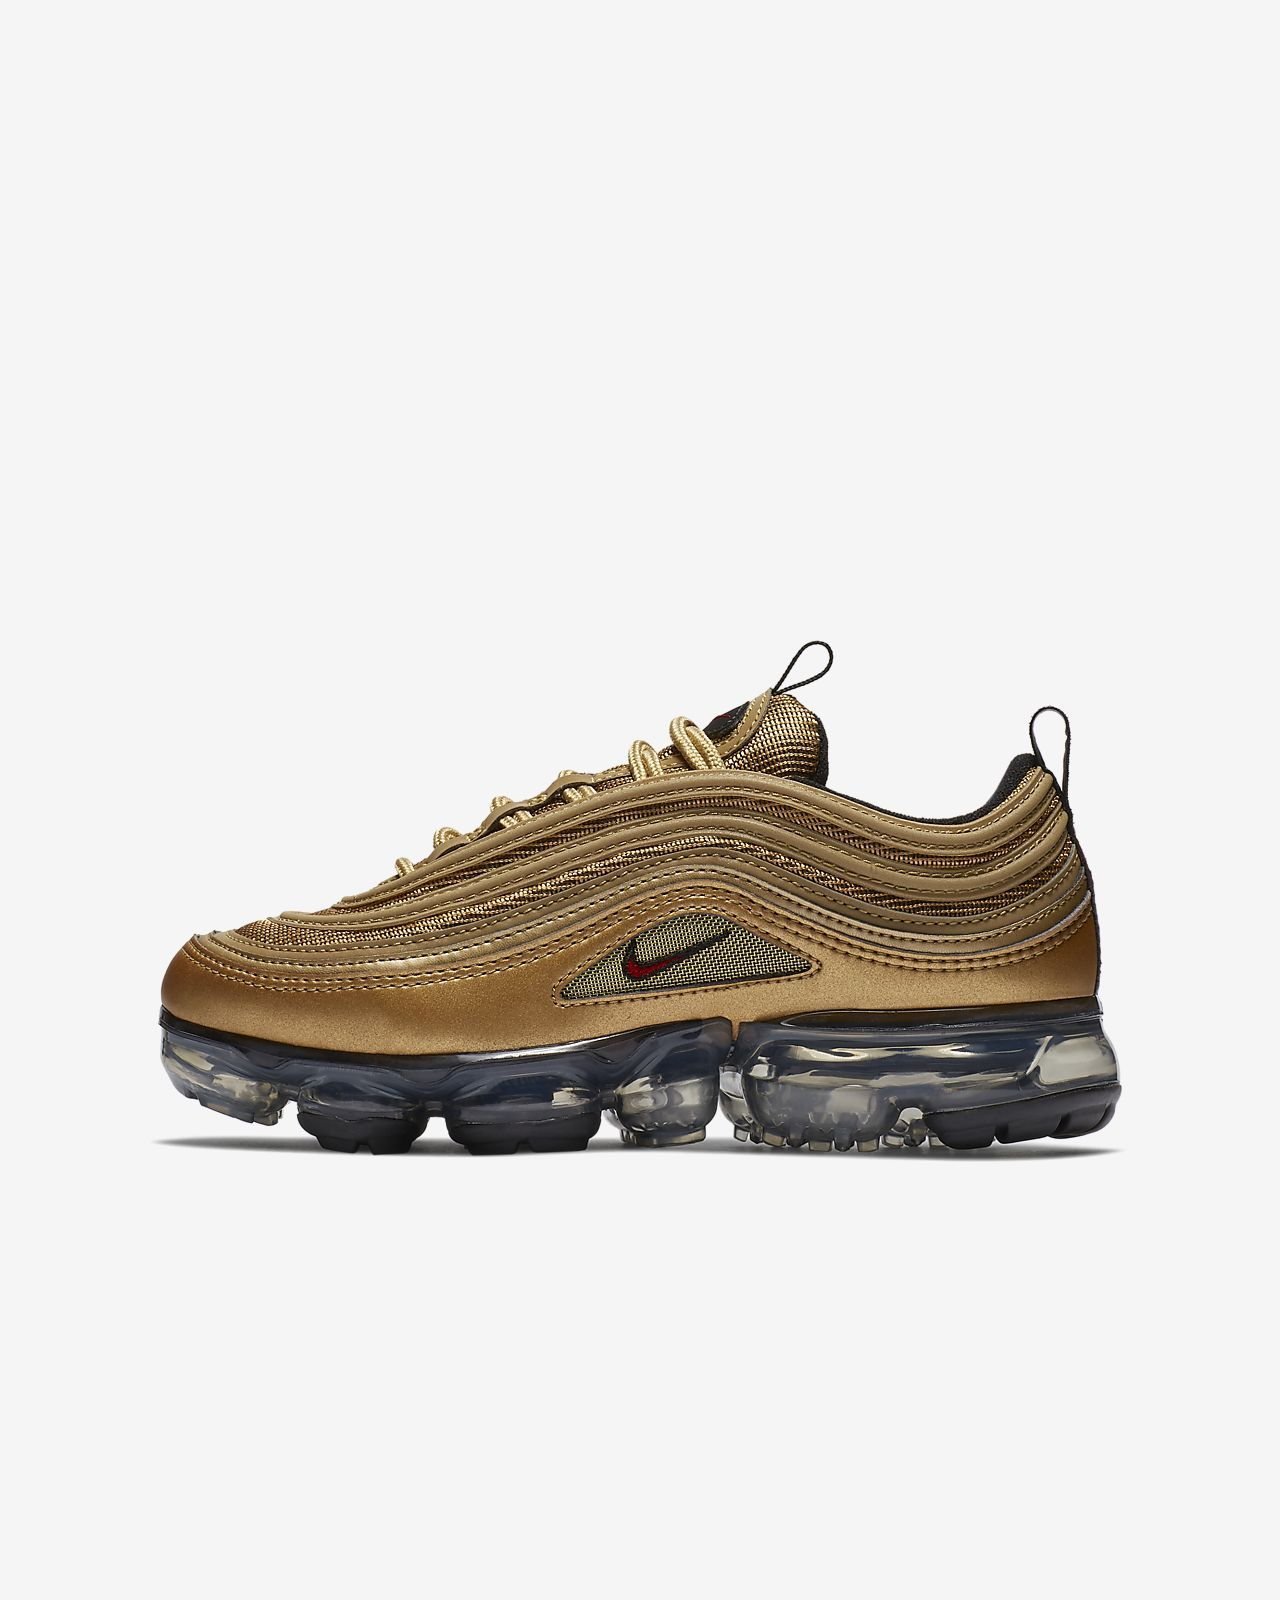 innovative design 81949 a4947 Nike Air VaporMax 97 Big Kids' Shoe | Nikes | Fashion, Nike ...